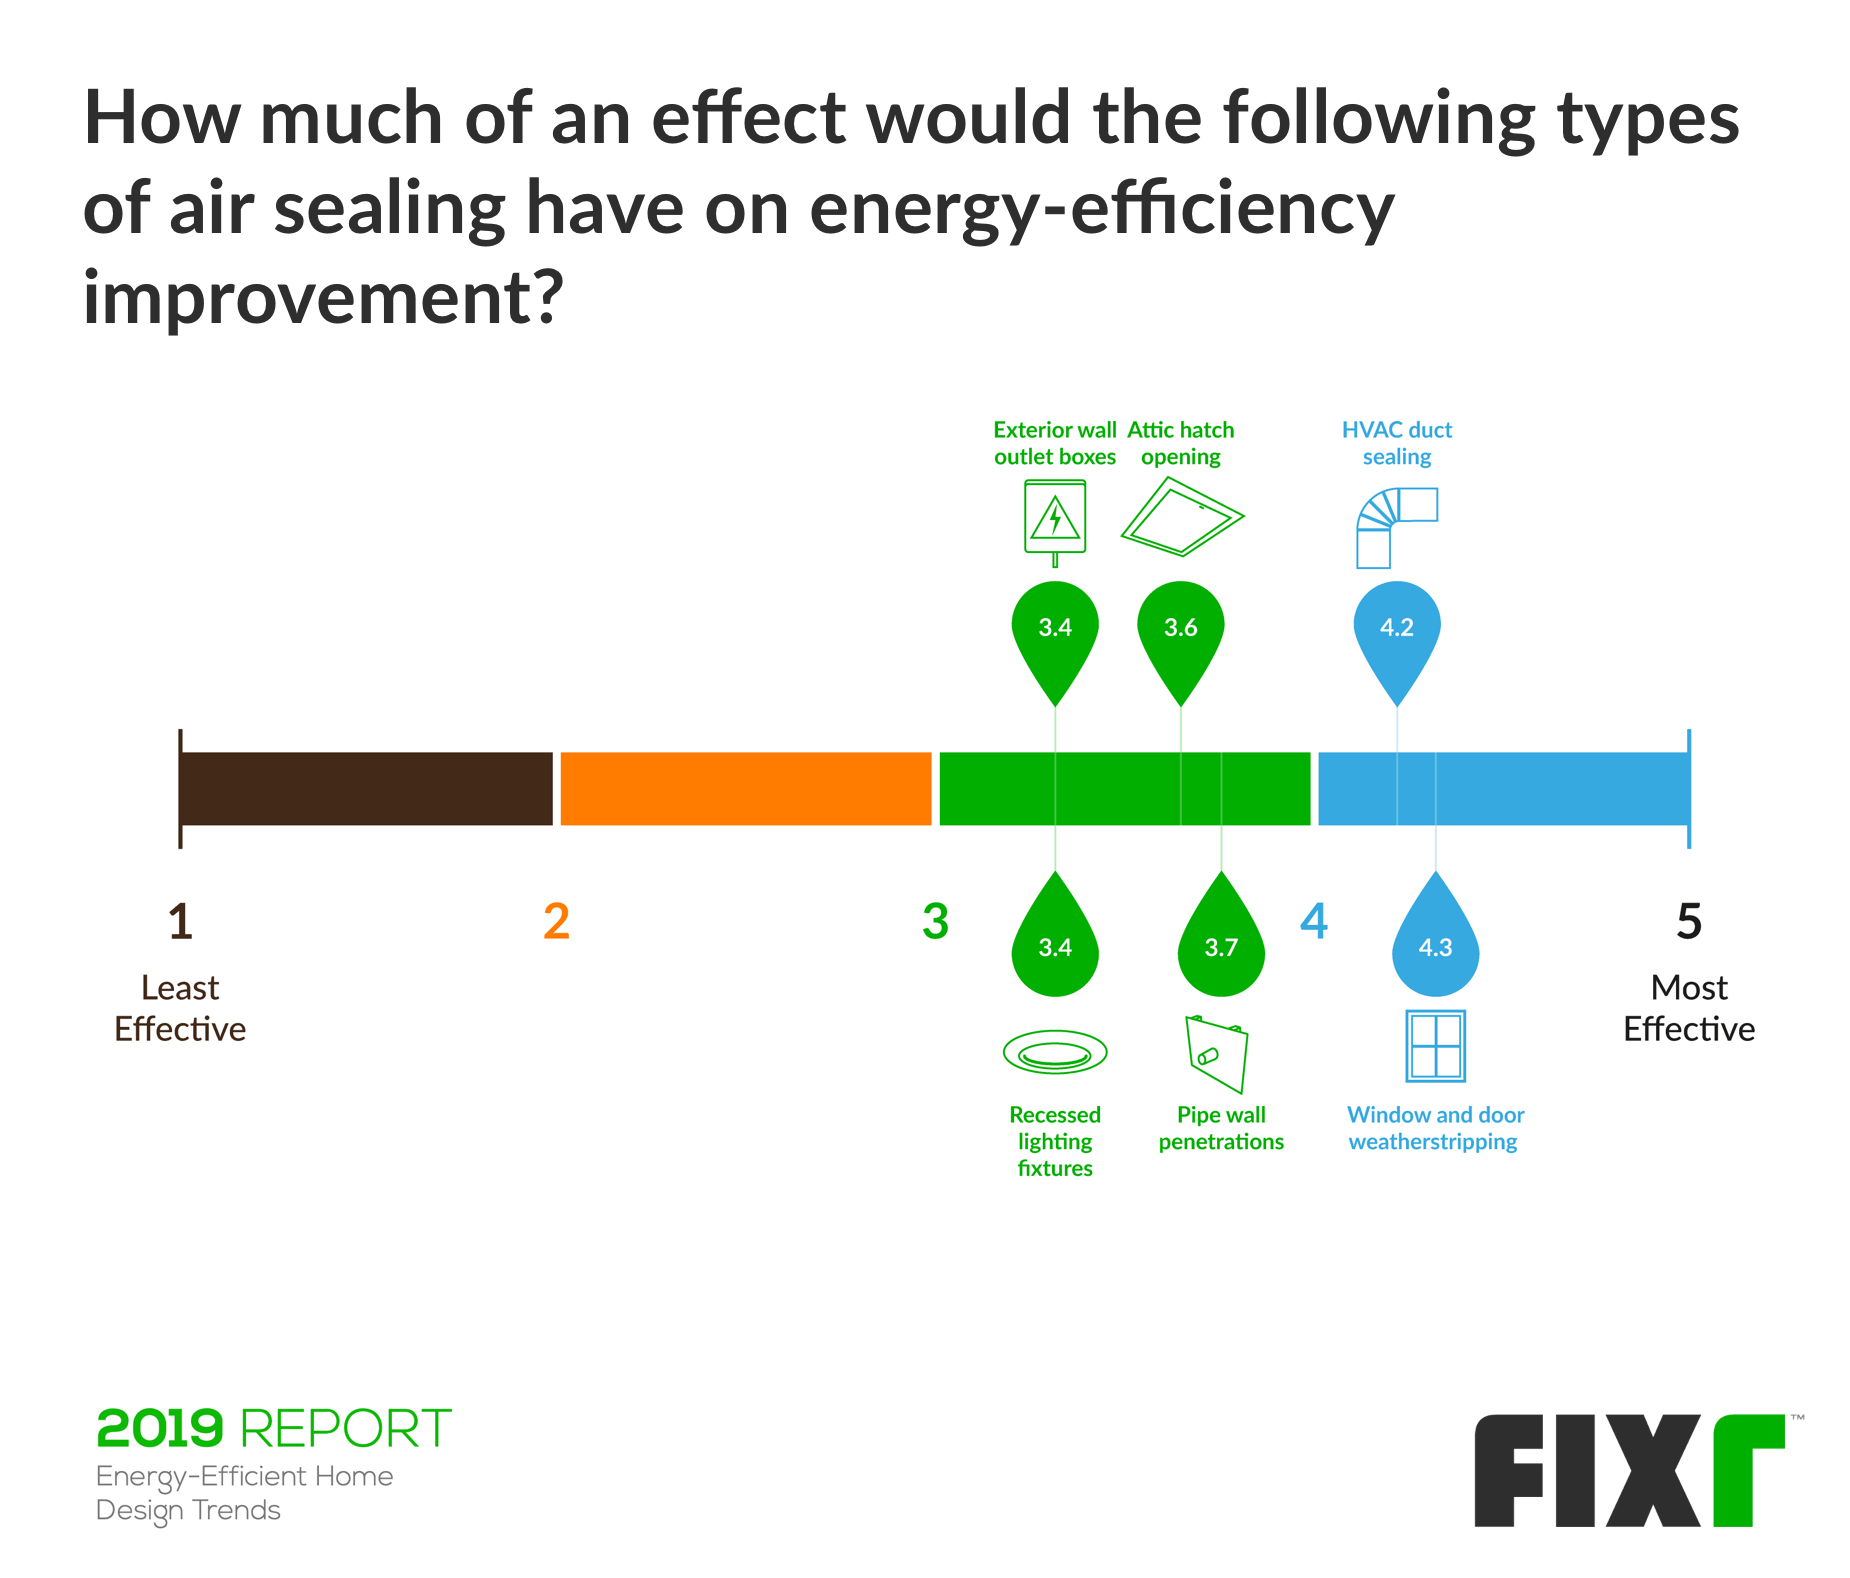 Effect of each air sealing on energy efficiency improvement